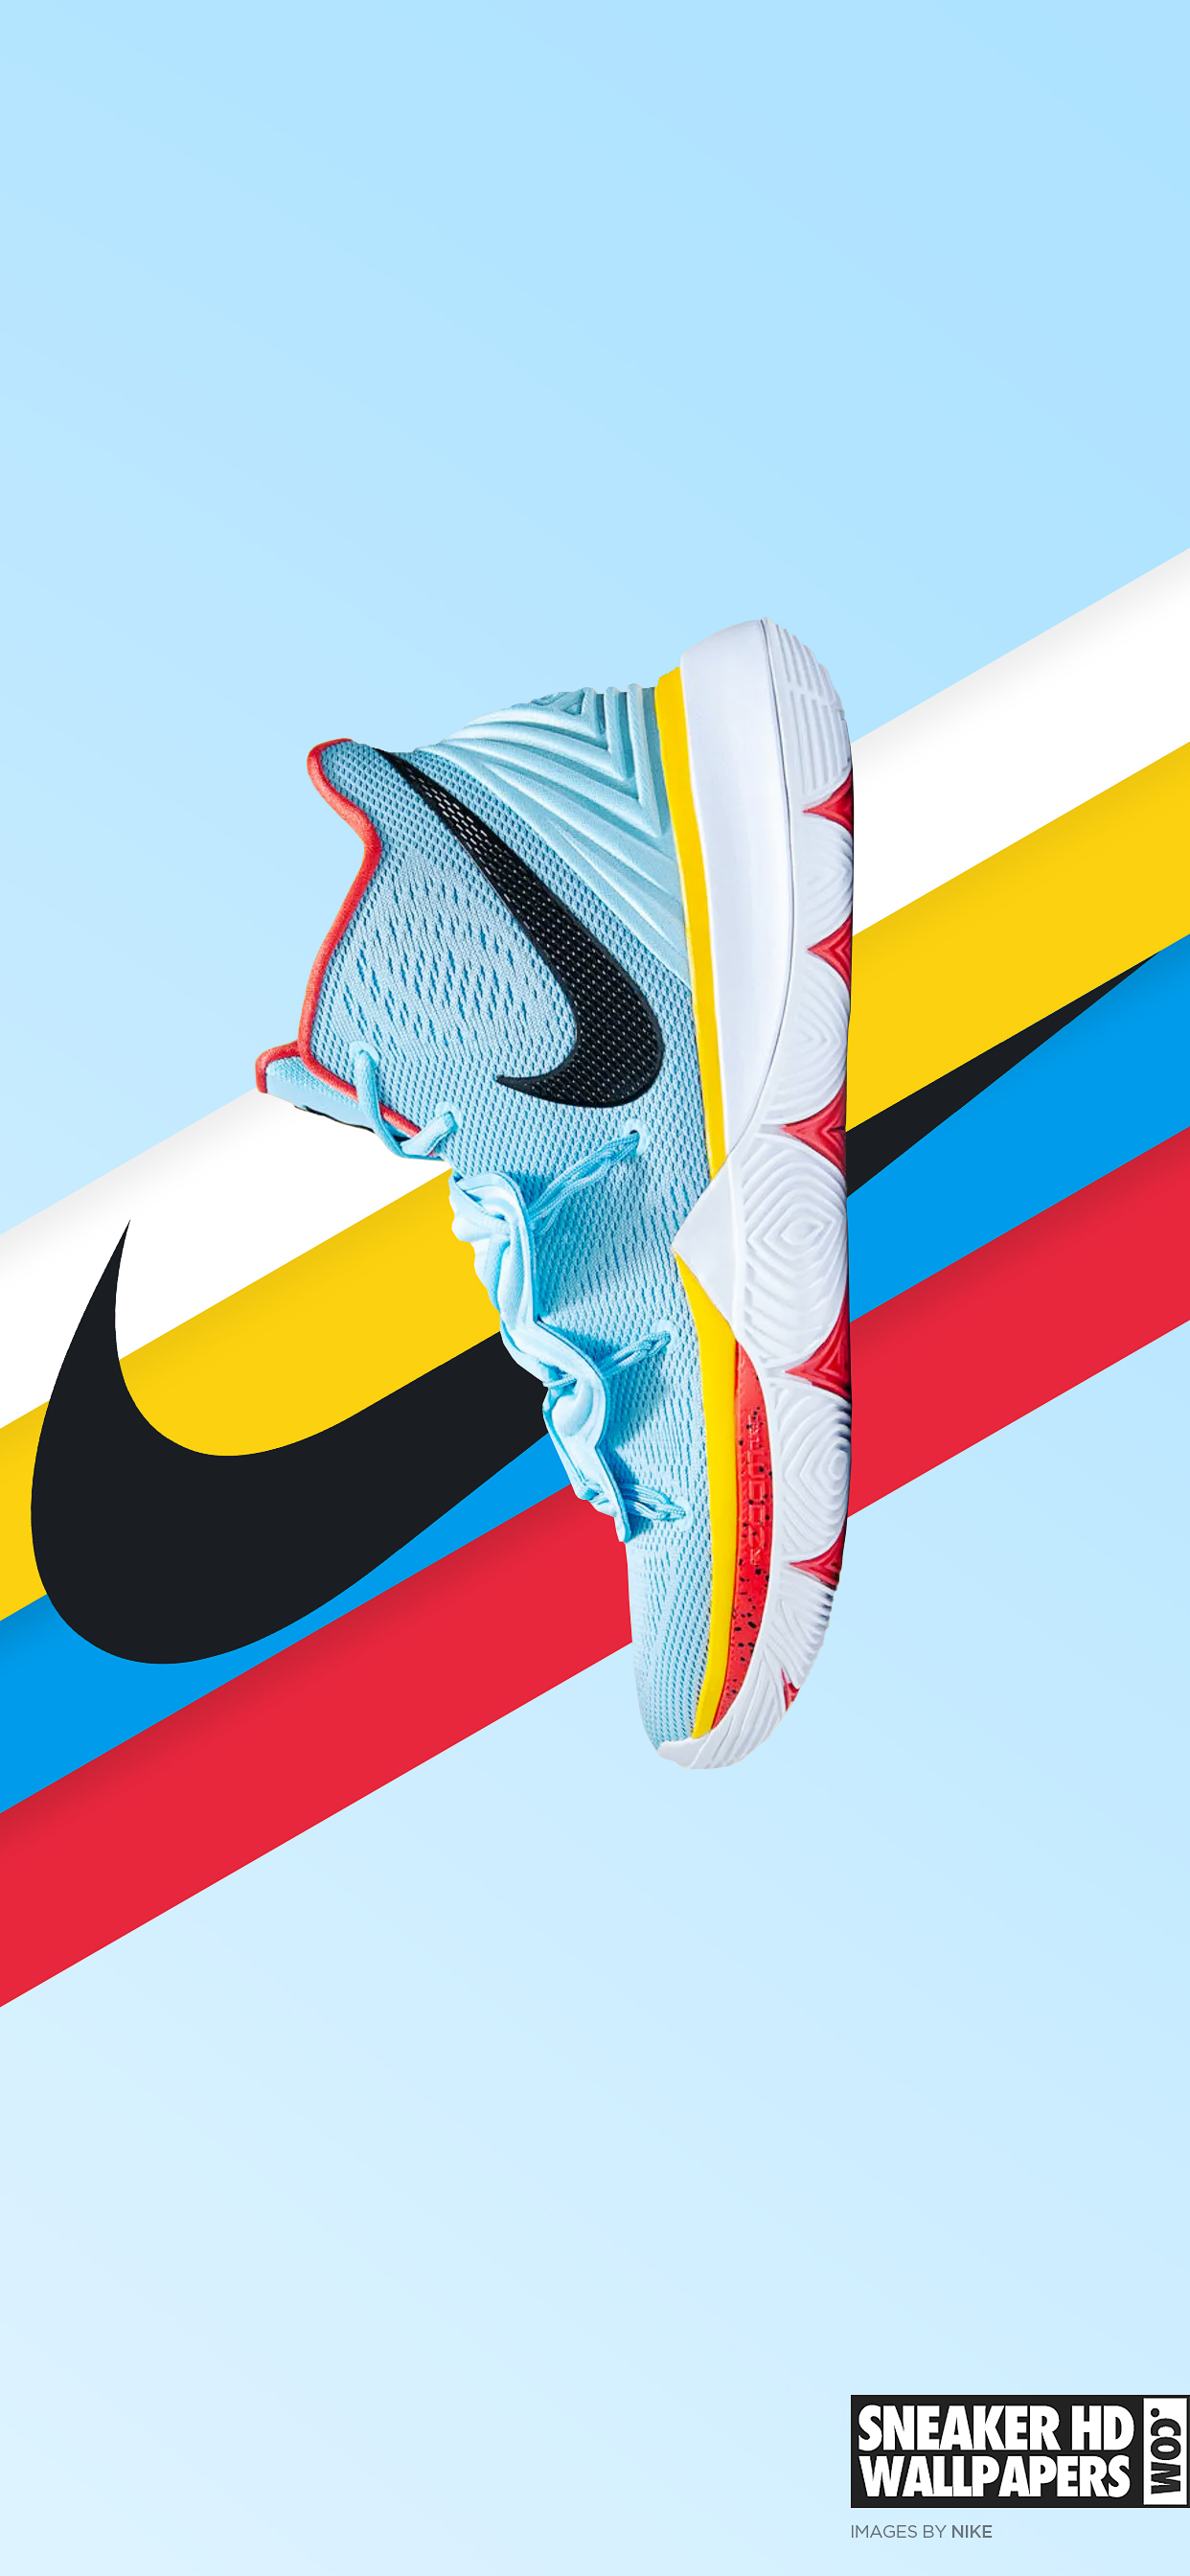 Sneakerhdwallpapers Com Your Favorite Sneakers In 4k Retina Mobile And Hd Wallpaper Resolutions Blog Archive Nike Kyrie 5 Little Mountain Wallpaper Sneakerhdwallpapers Com Your Favorite Sneakers In 4k Retina Mobile